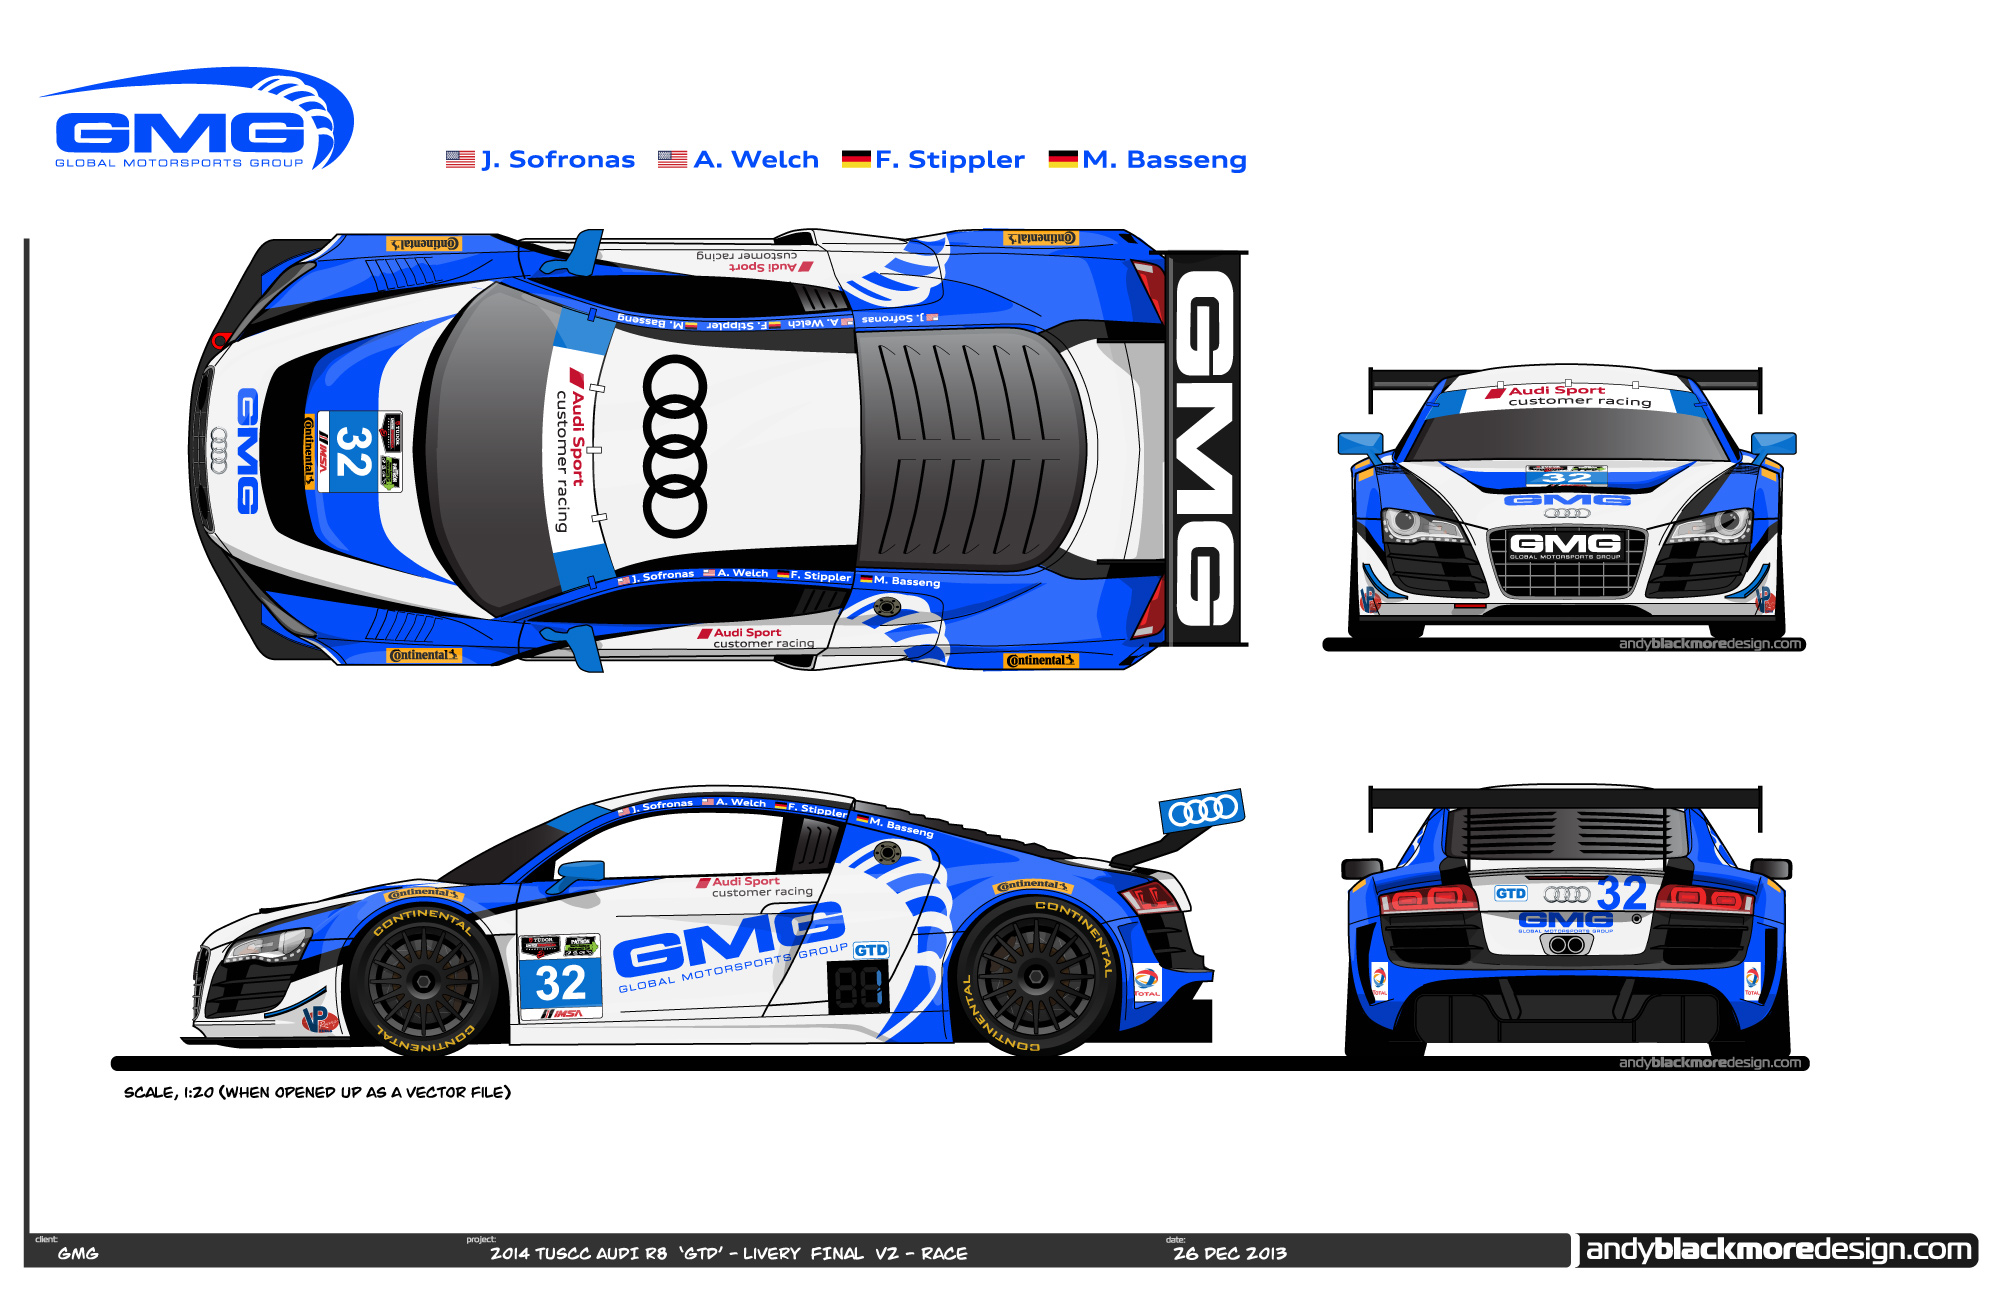 Daytona 24 hour audi r8 lms gtd driver lineups liveries revealed malvernweather Choice Image